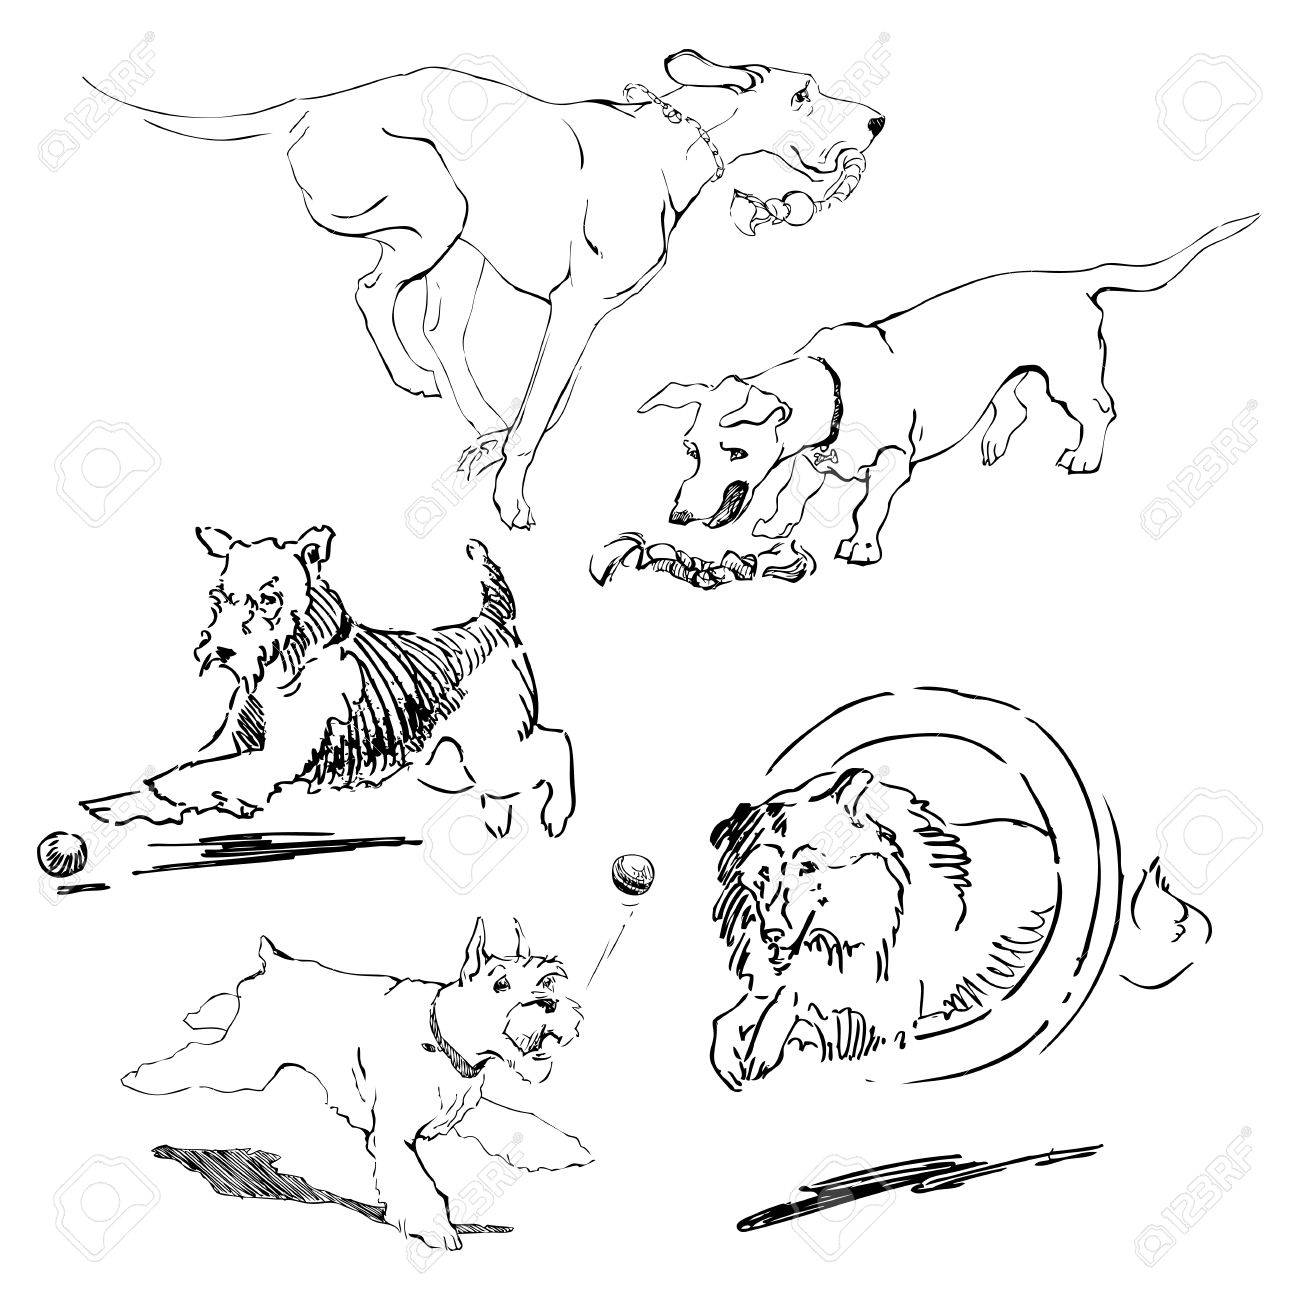 1300x1300 A Set Of Drawings Of Different Breeds Dogs In Motion. Games